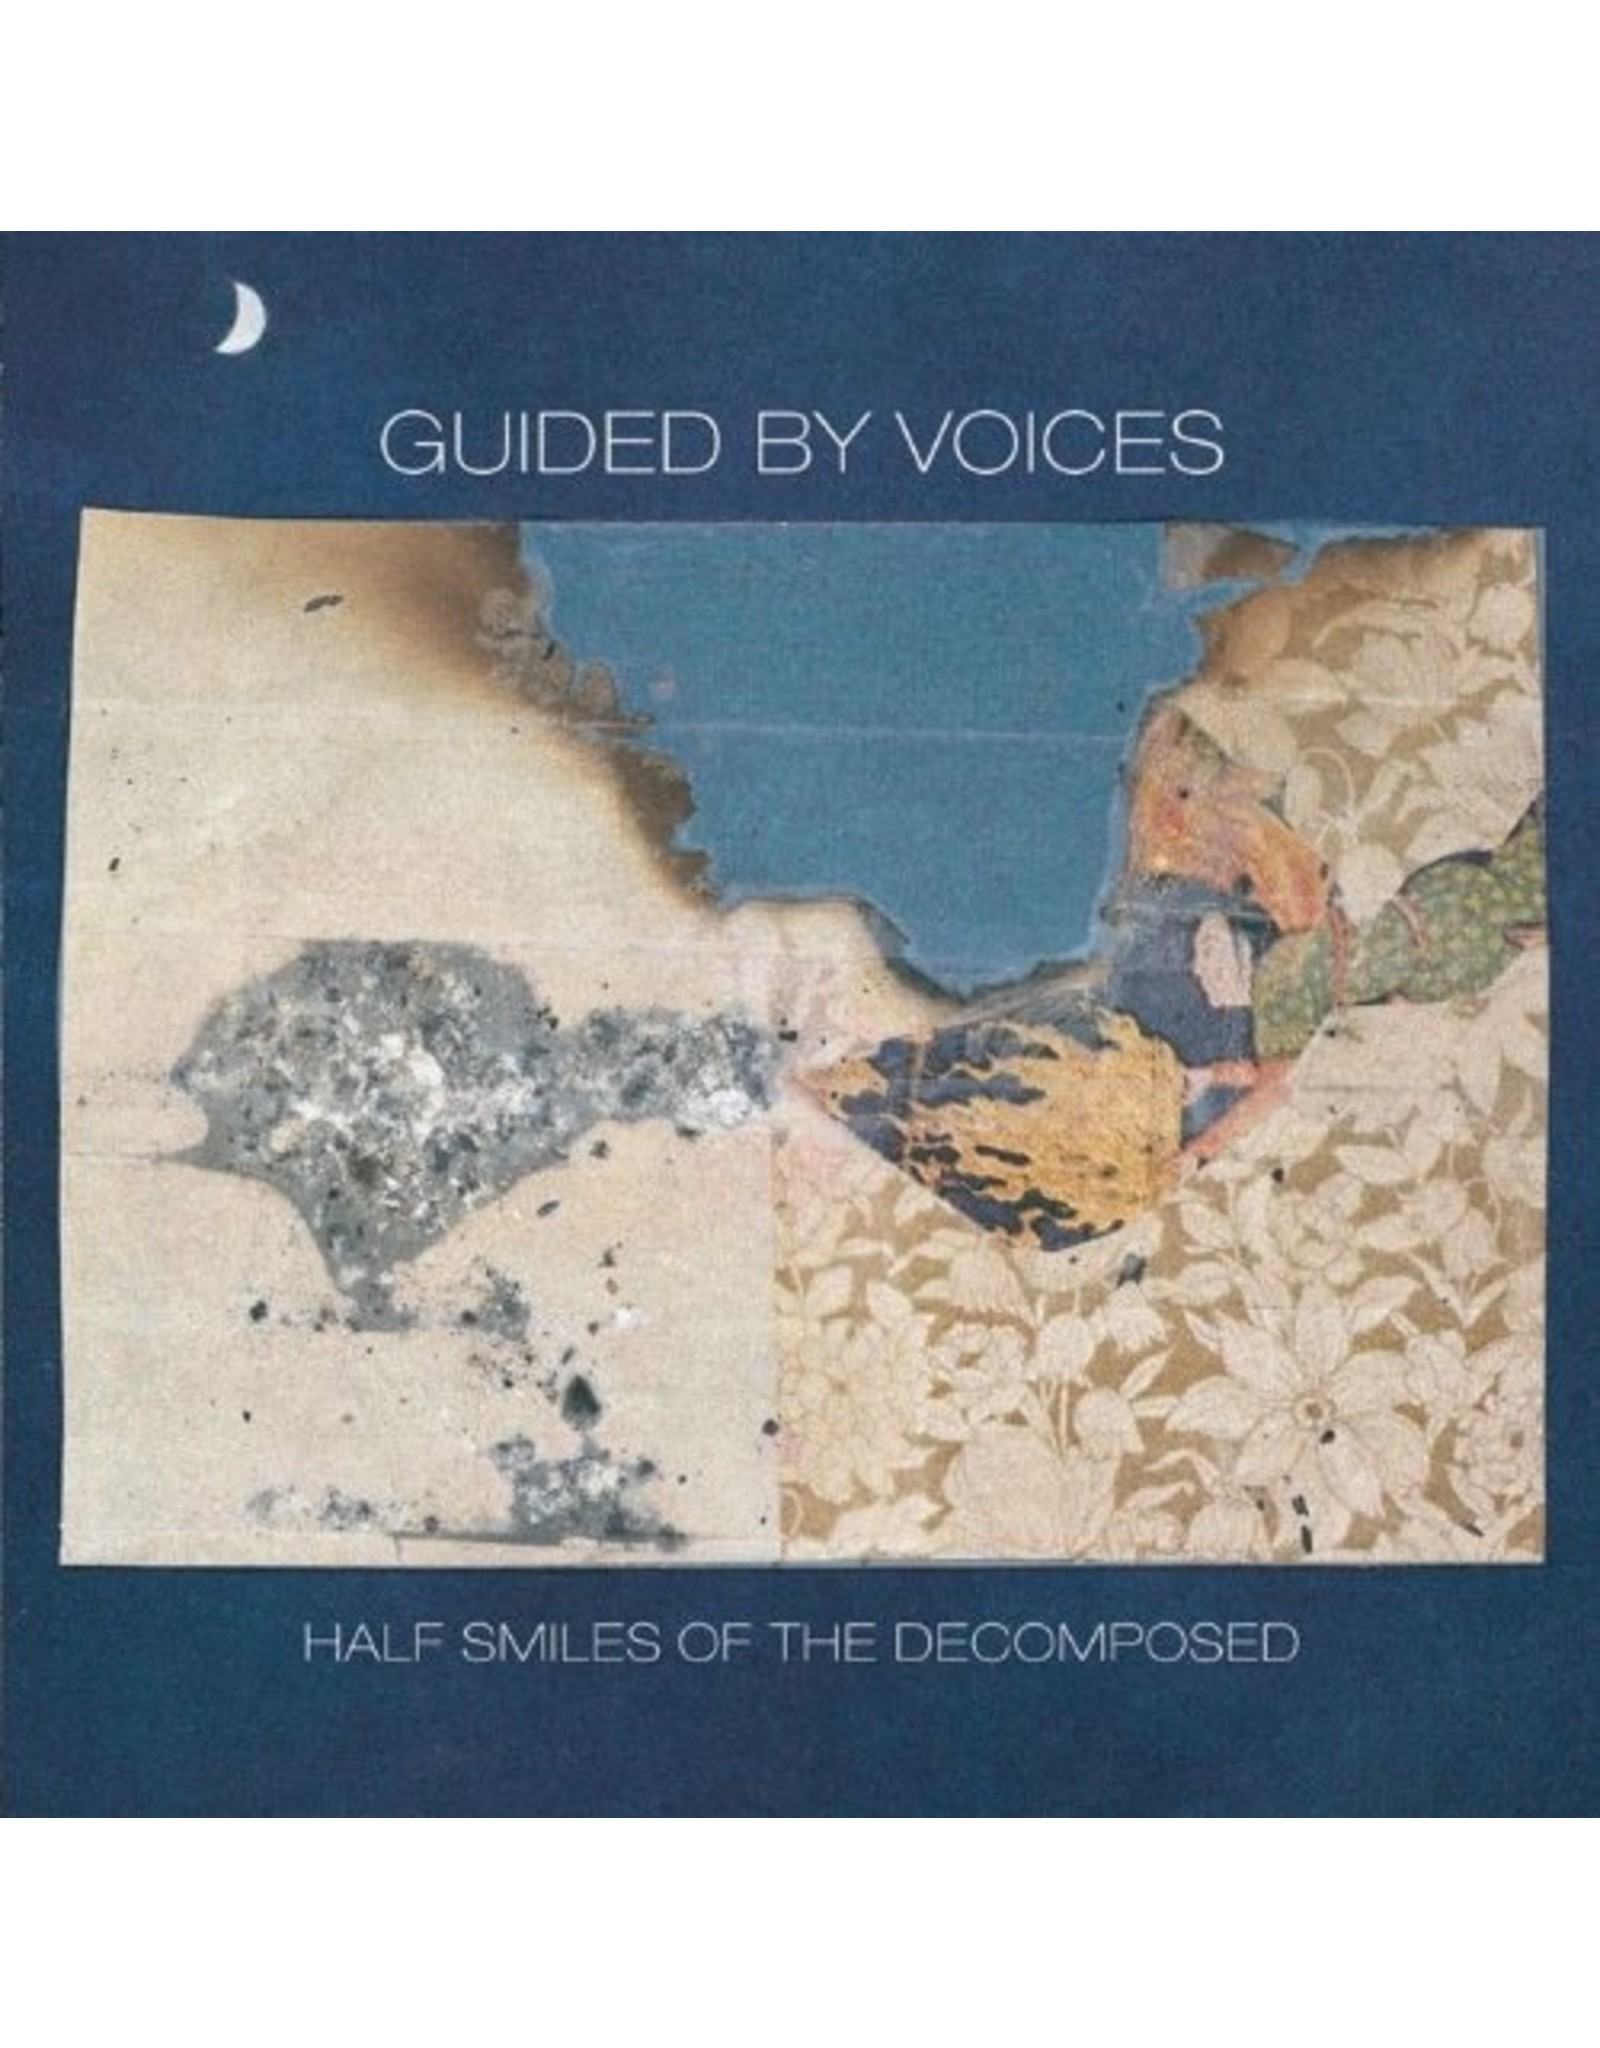 New Vinyl Guided By Voices - Half Smiles Of The Decomposed LP